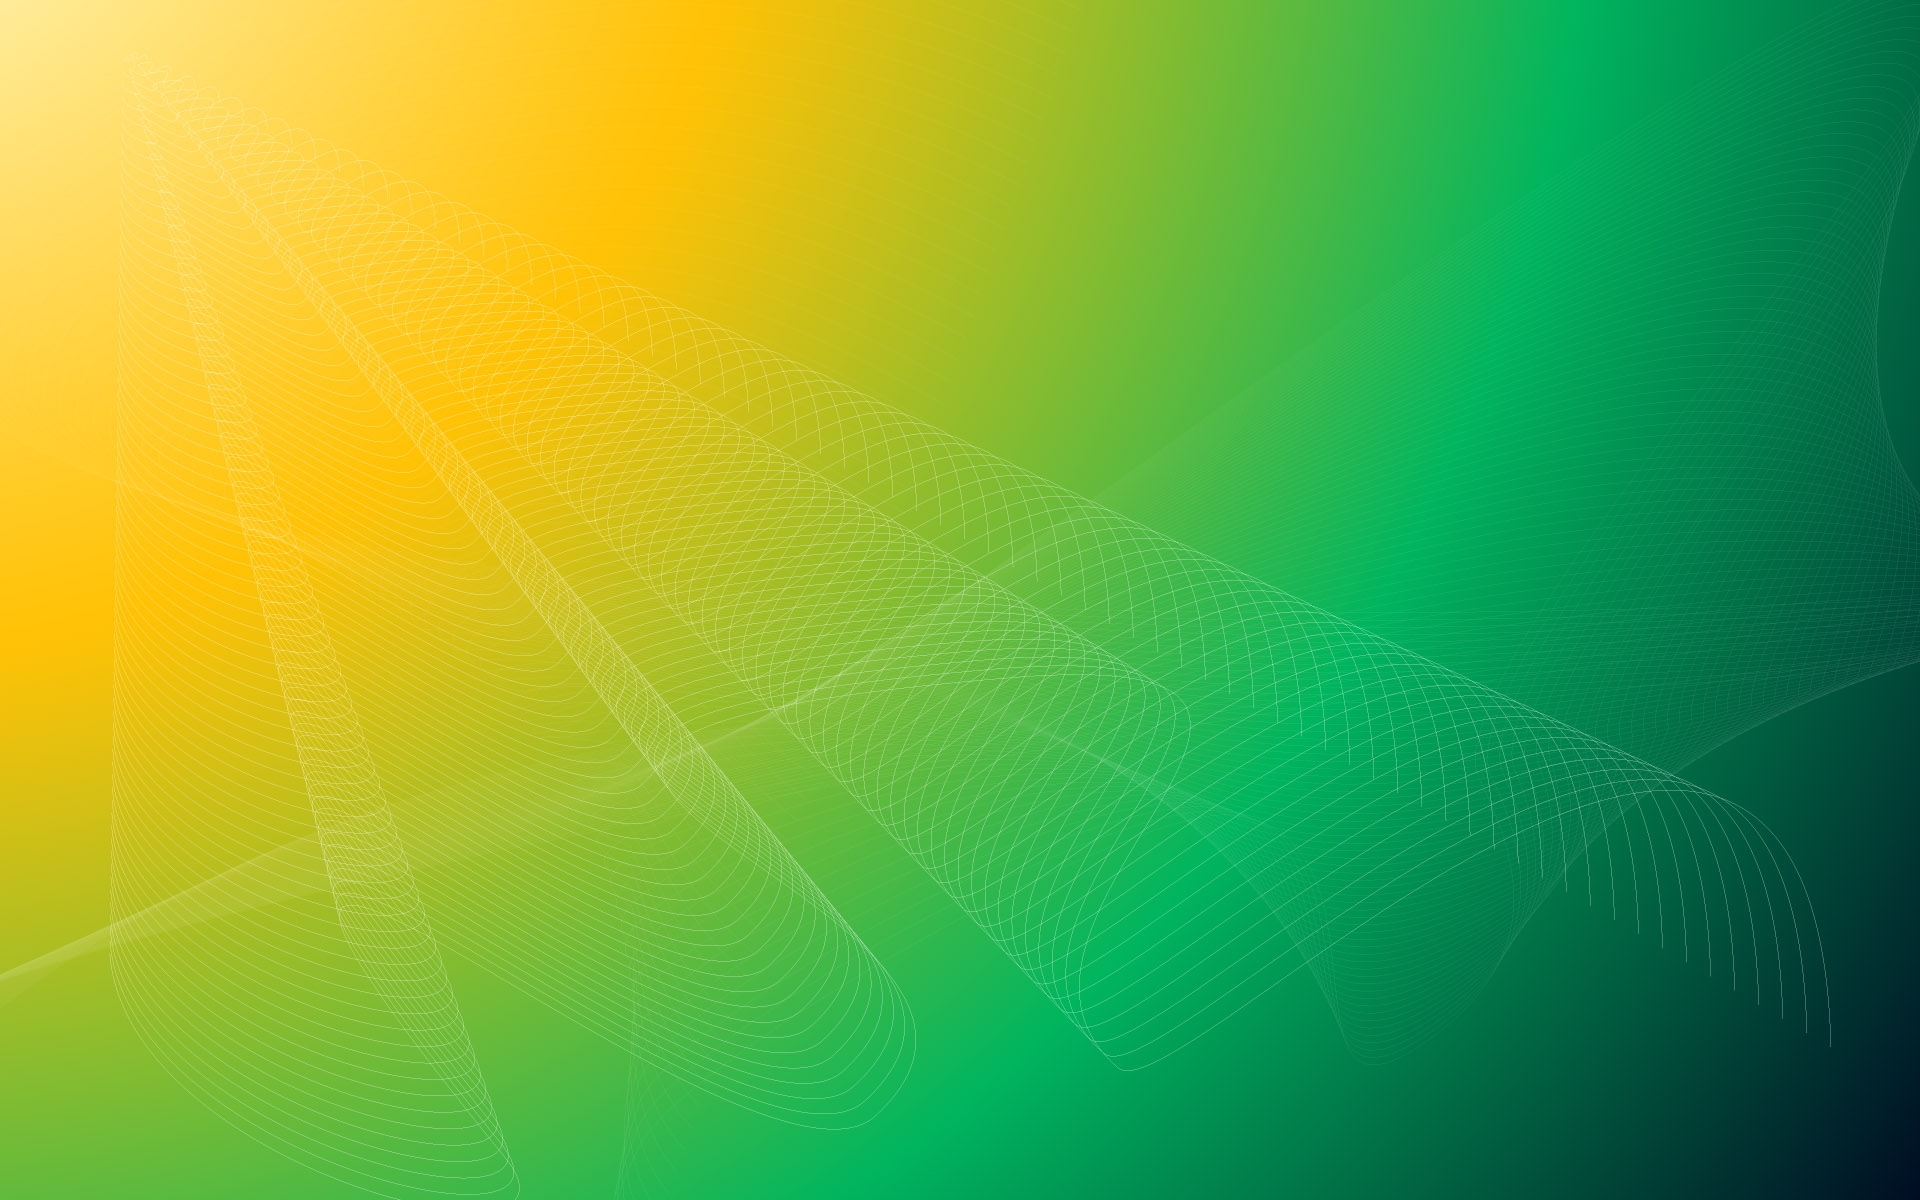 Yellow And Green Wallpapers: Pattern Full HD Wallpaper And Background Image